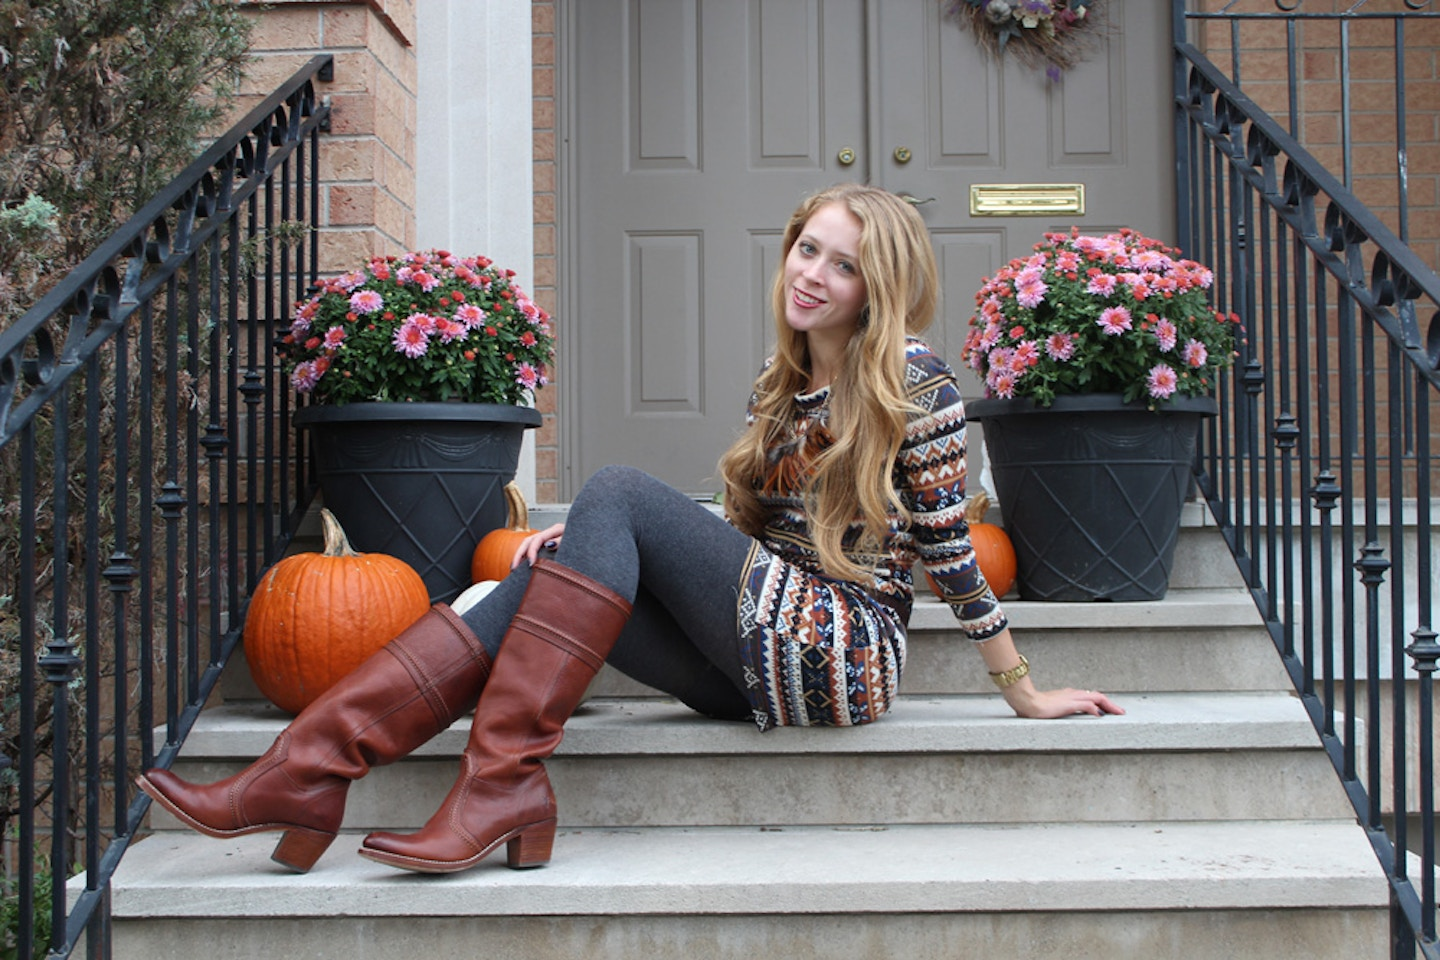 IKAT printed dress, Frye boots and feathers = Happy (Canadian) Thanksgiving!